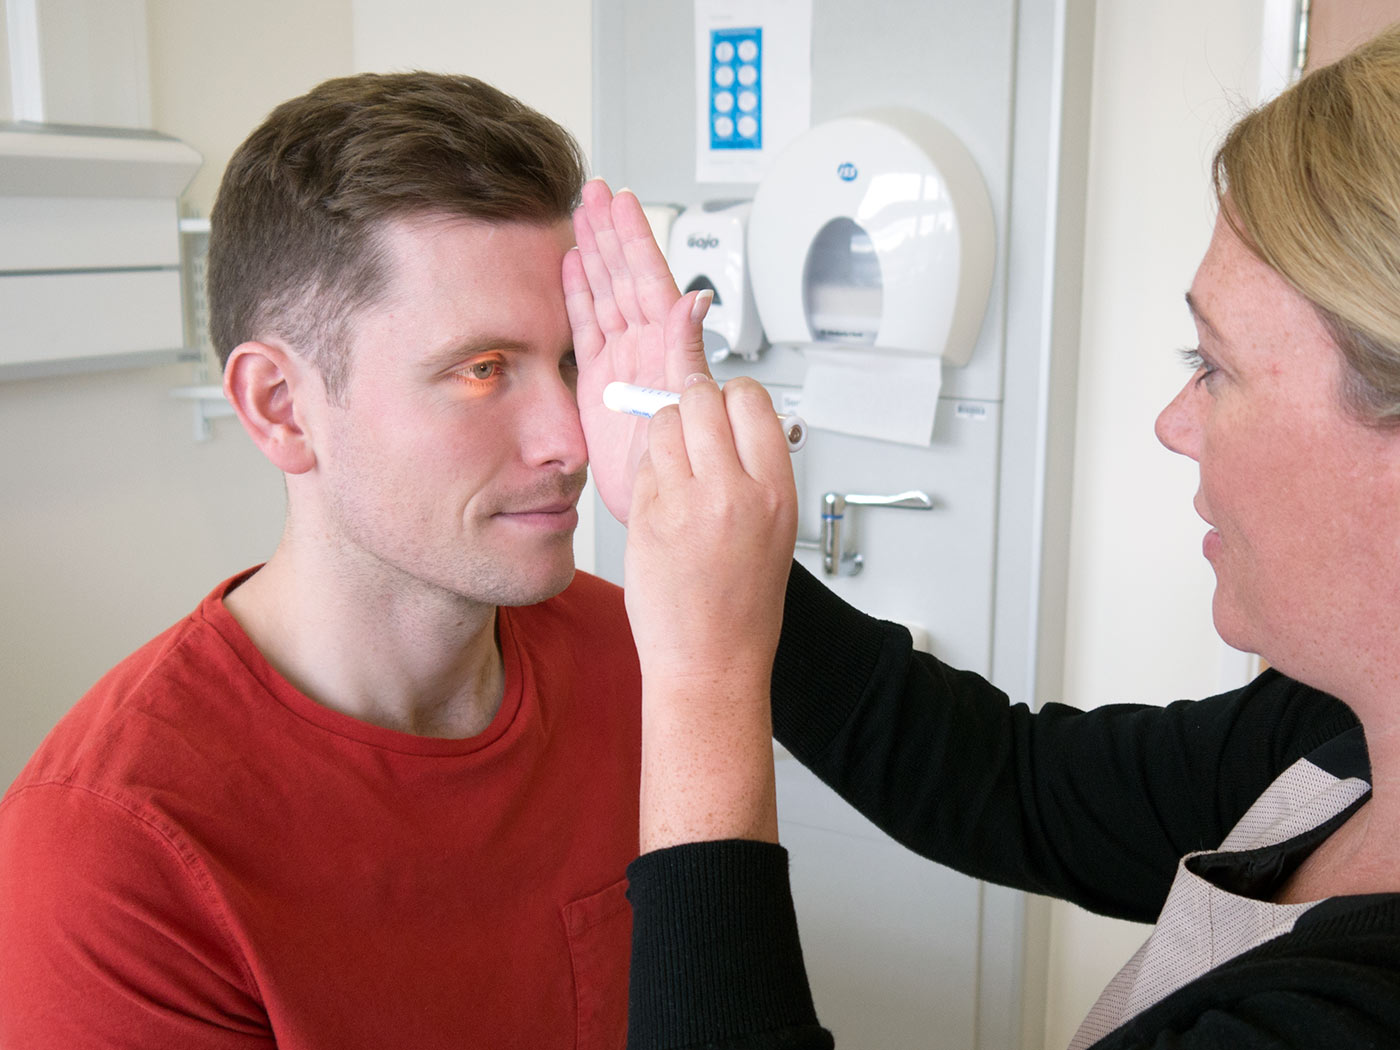 Shine a pen torch into the patient's eye